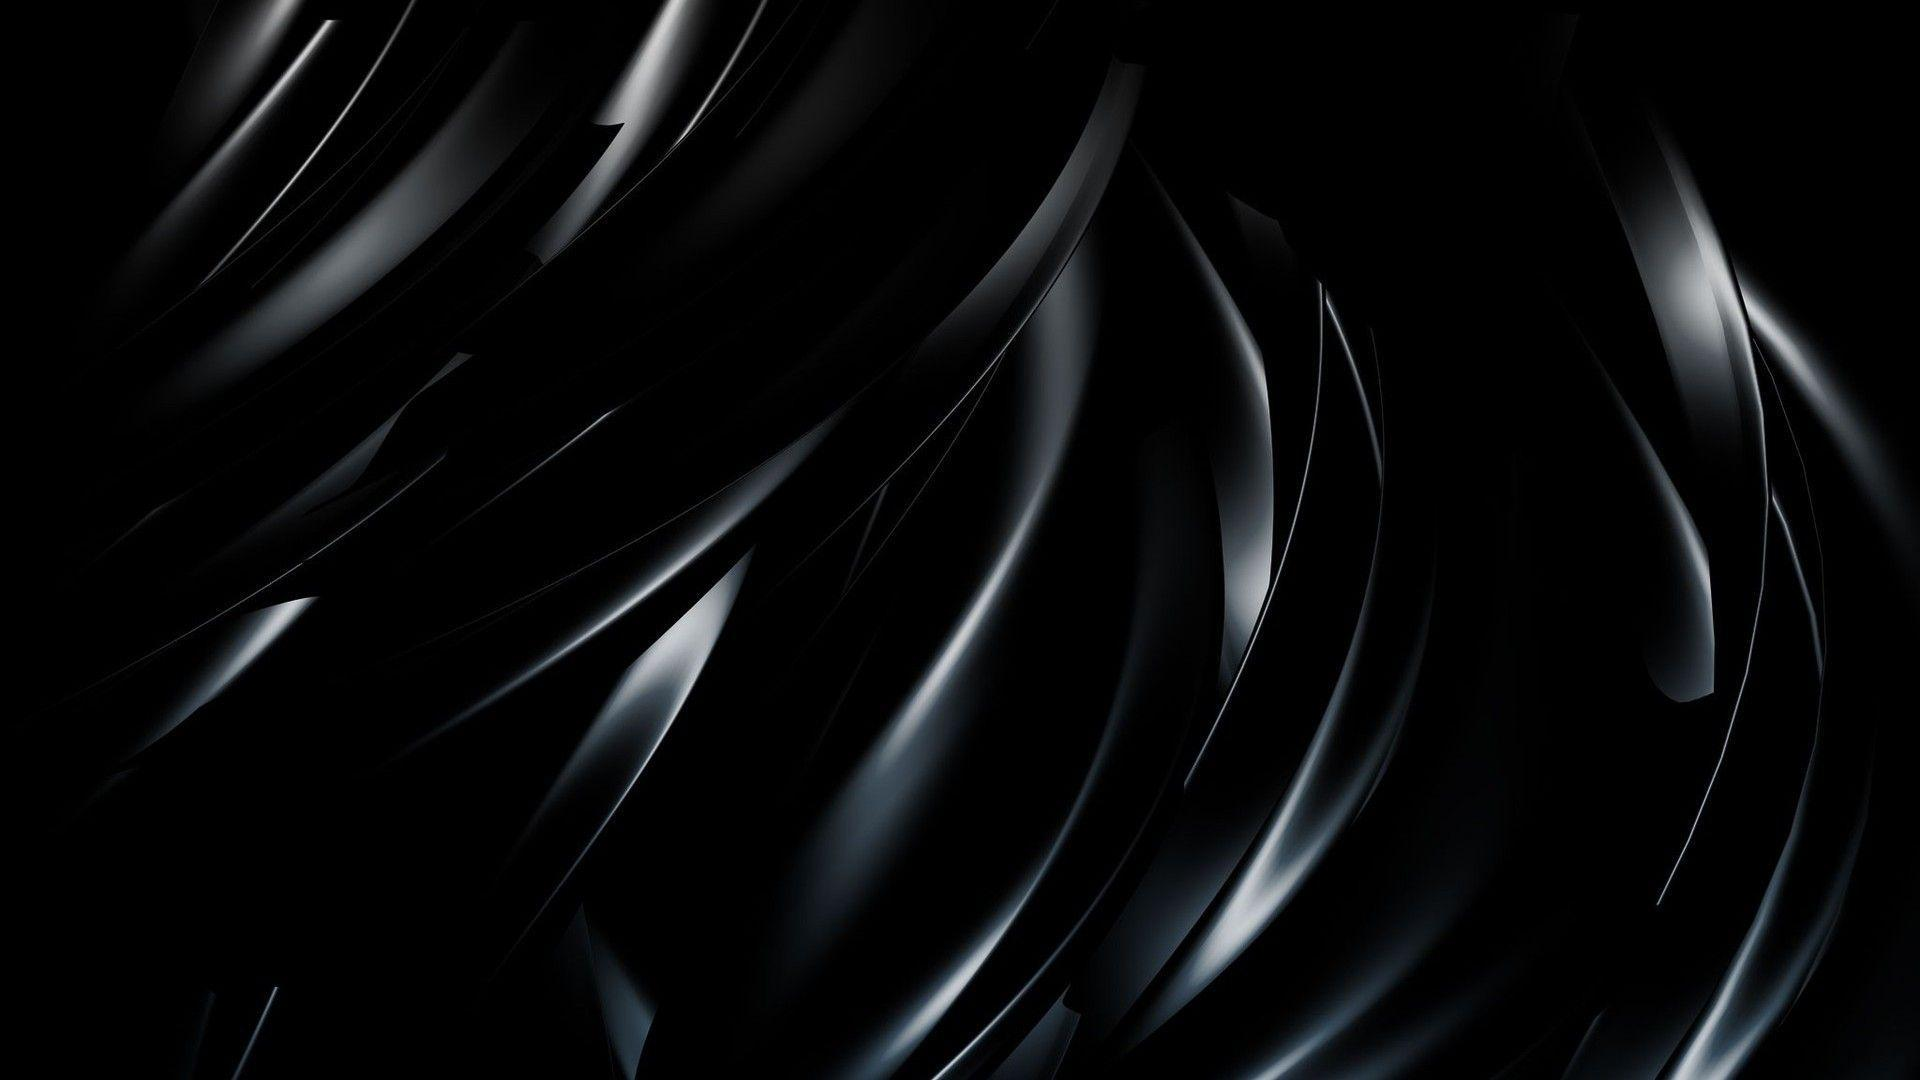 1920x1080 Black Wallpapers Top Free 1920x1080 Black Backgrounds Wallpaperaccess